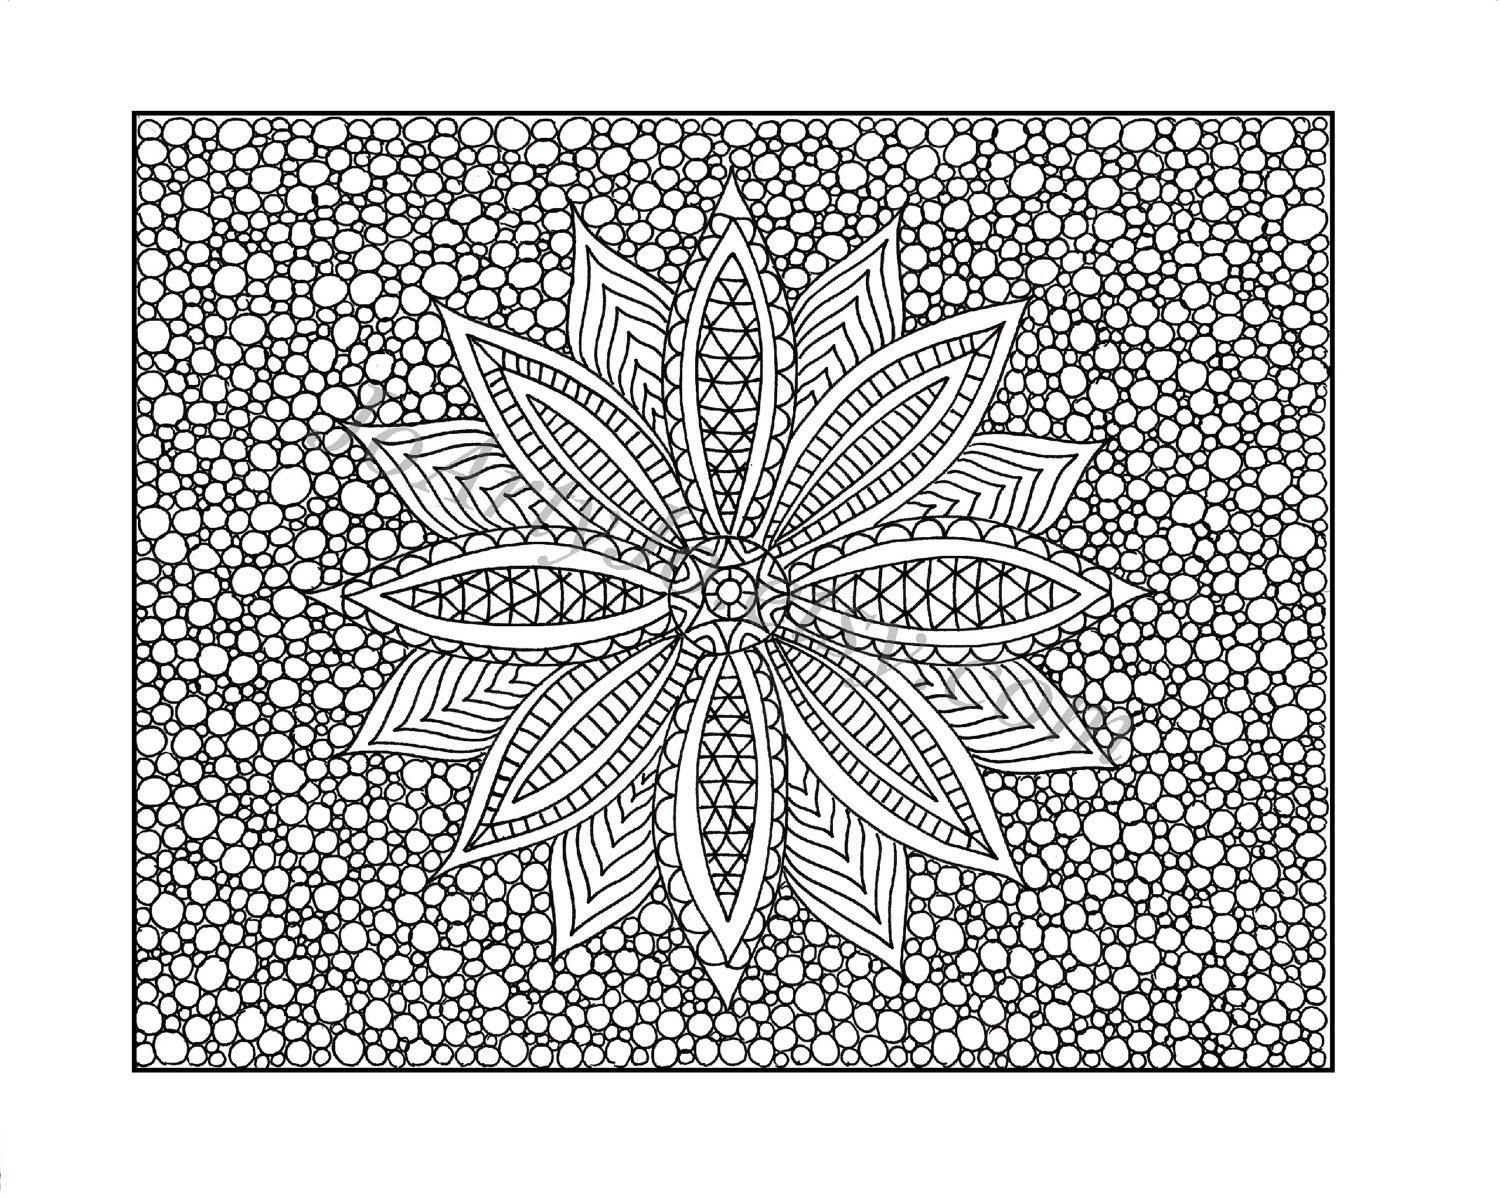 Zentangle Coloring Page Printable Page 10 Fotofuze Zentangle Coloring Page